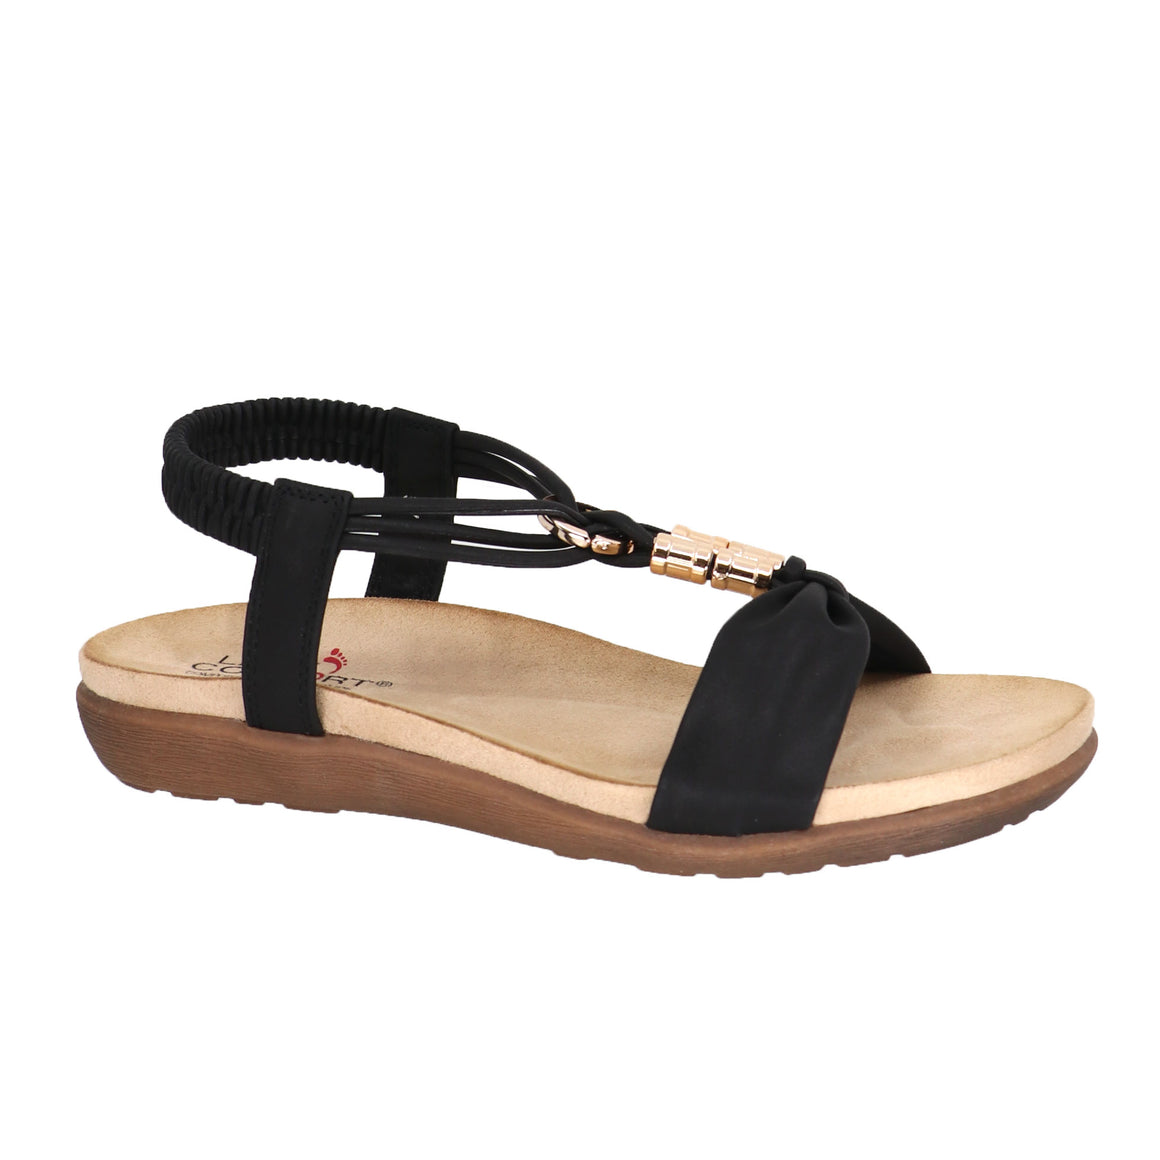 Stepping Out In Style Sandal